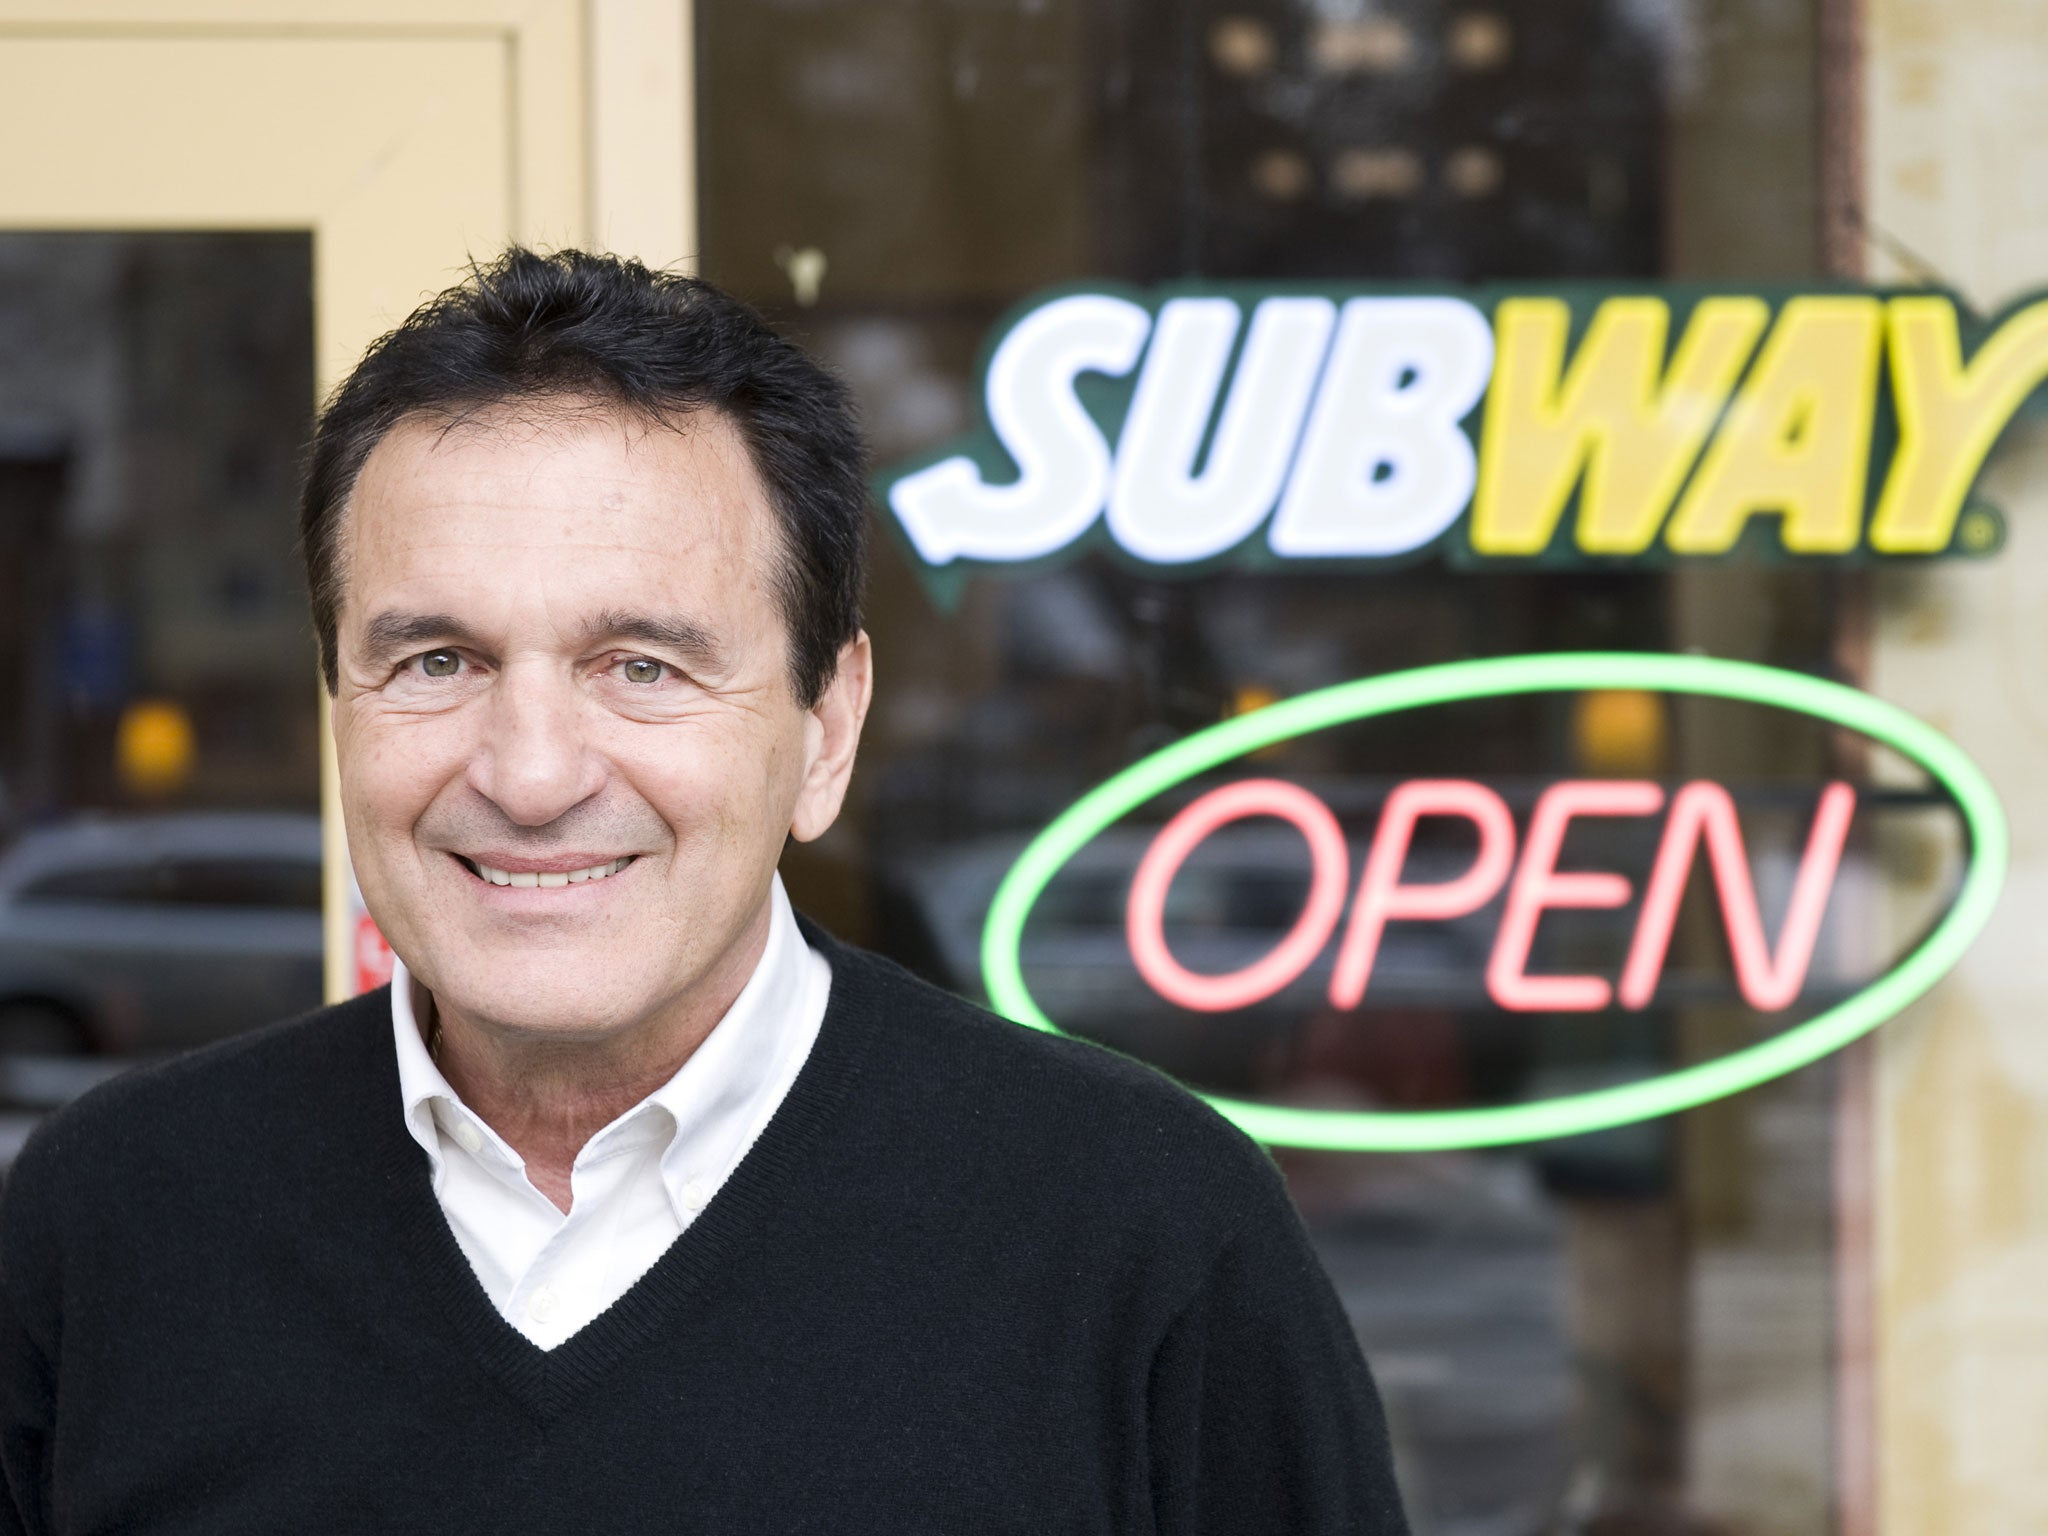 Fred DeLuca, founder of Subway, on his seven business lessons | The Independent | The Independent